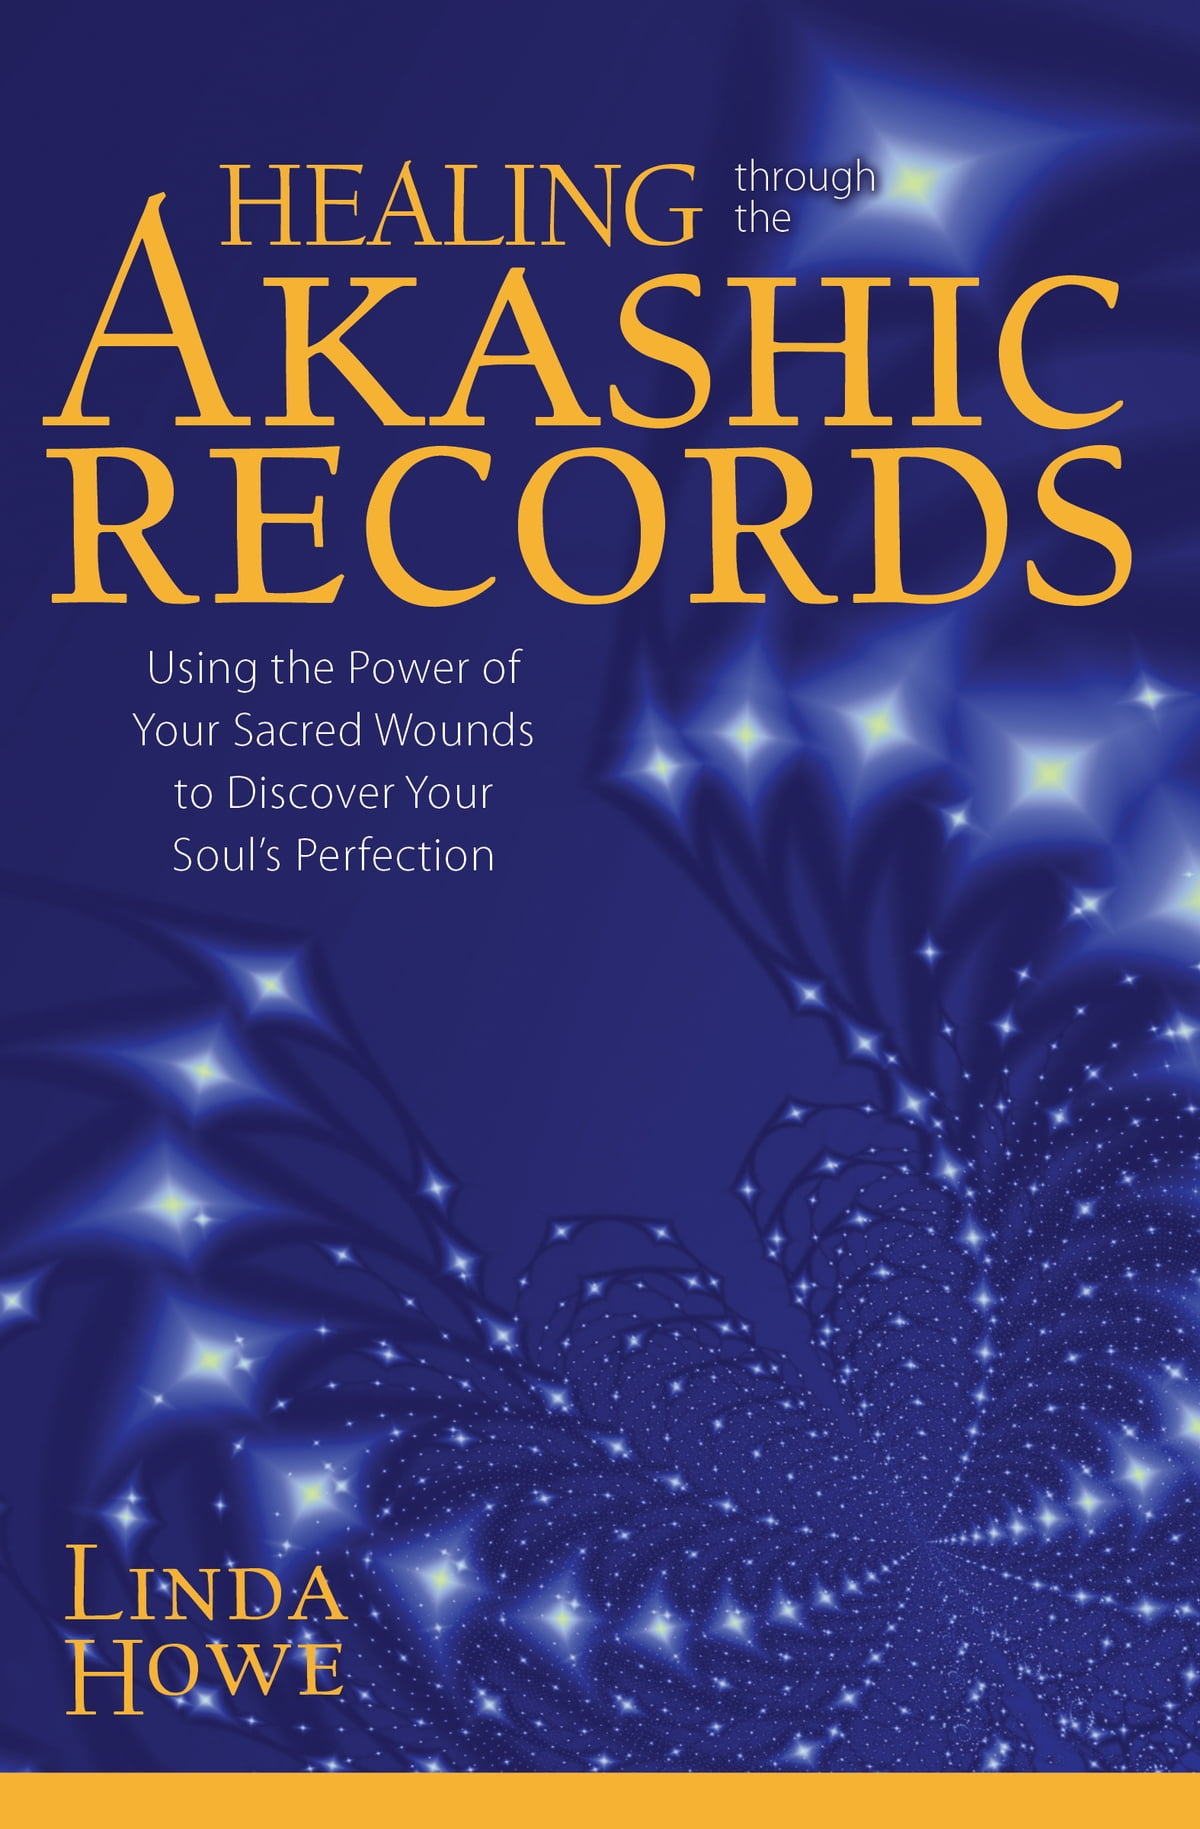 Healing Through the Akashic Records: Using the Power of Your Sacred Wounds  to Discover Your Soul's Perfection ebook by Linda Howe - Rakuten Kobo